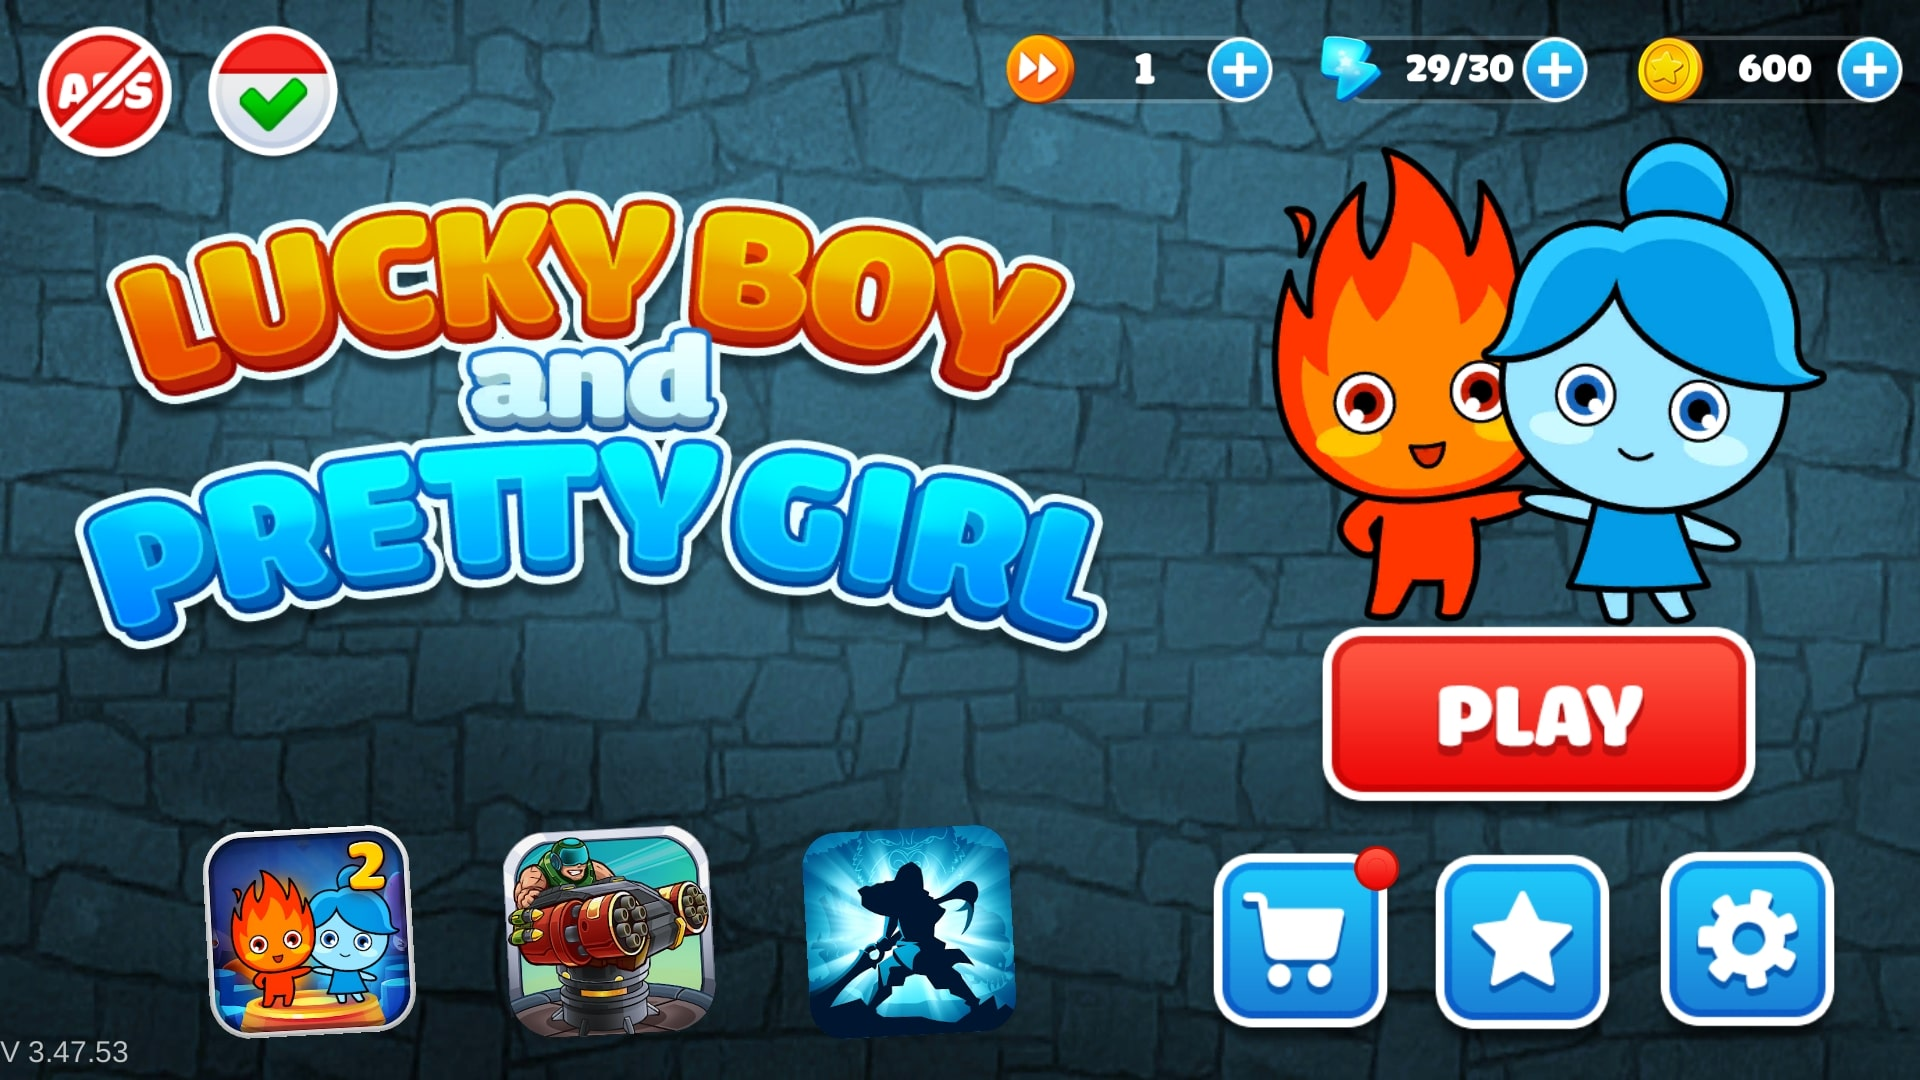 Download LuckyBoy and PrettyGirl - Crystal Temple Maze APK - For Android 9